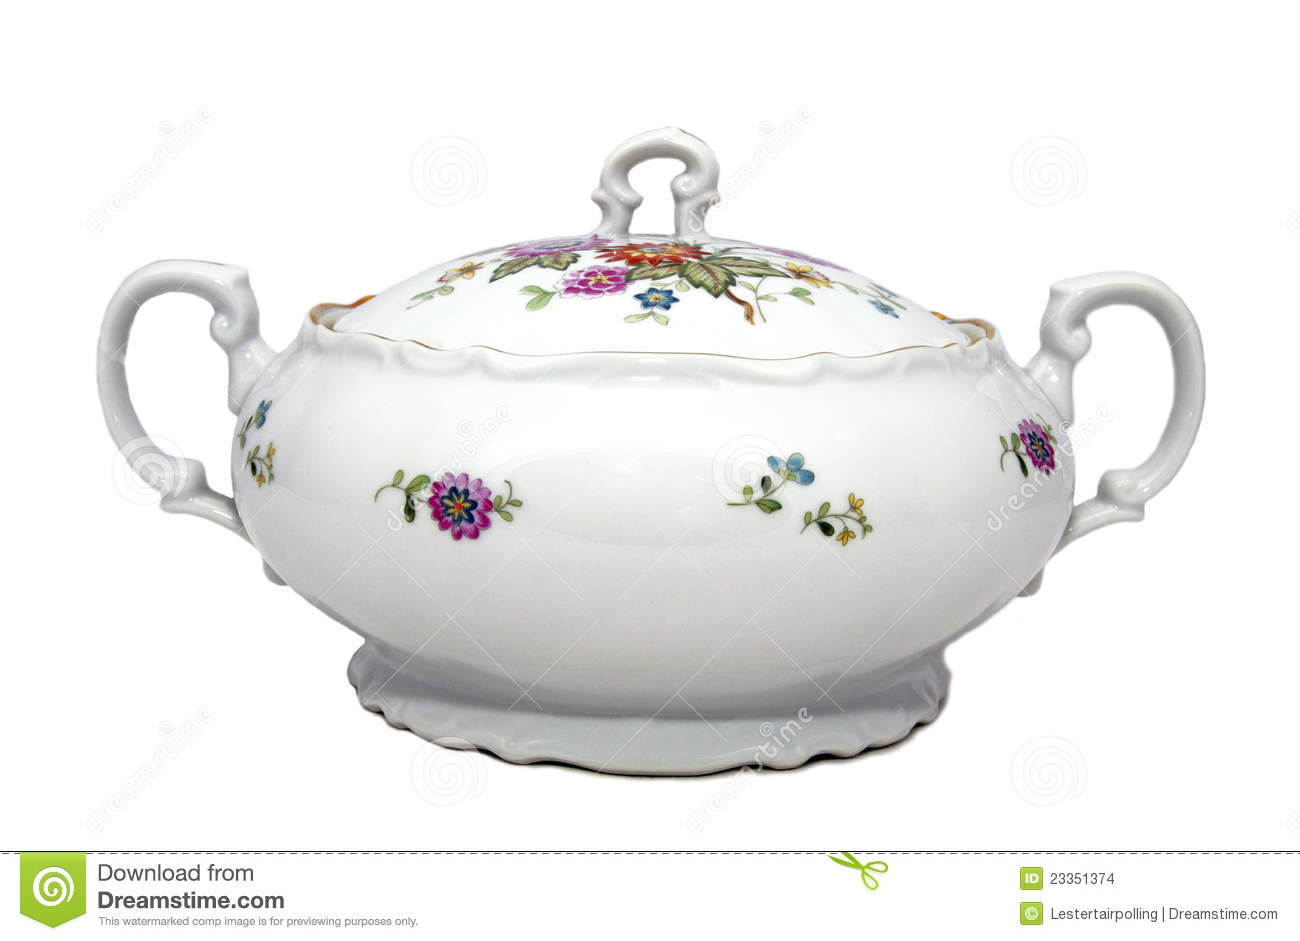 Fiesta Soup Tureen from Homer Laughlin